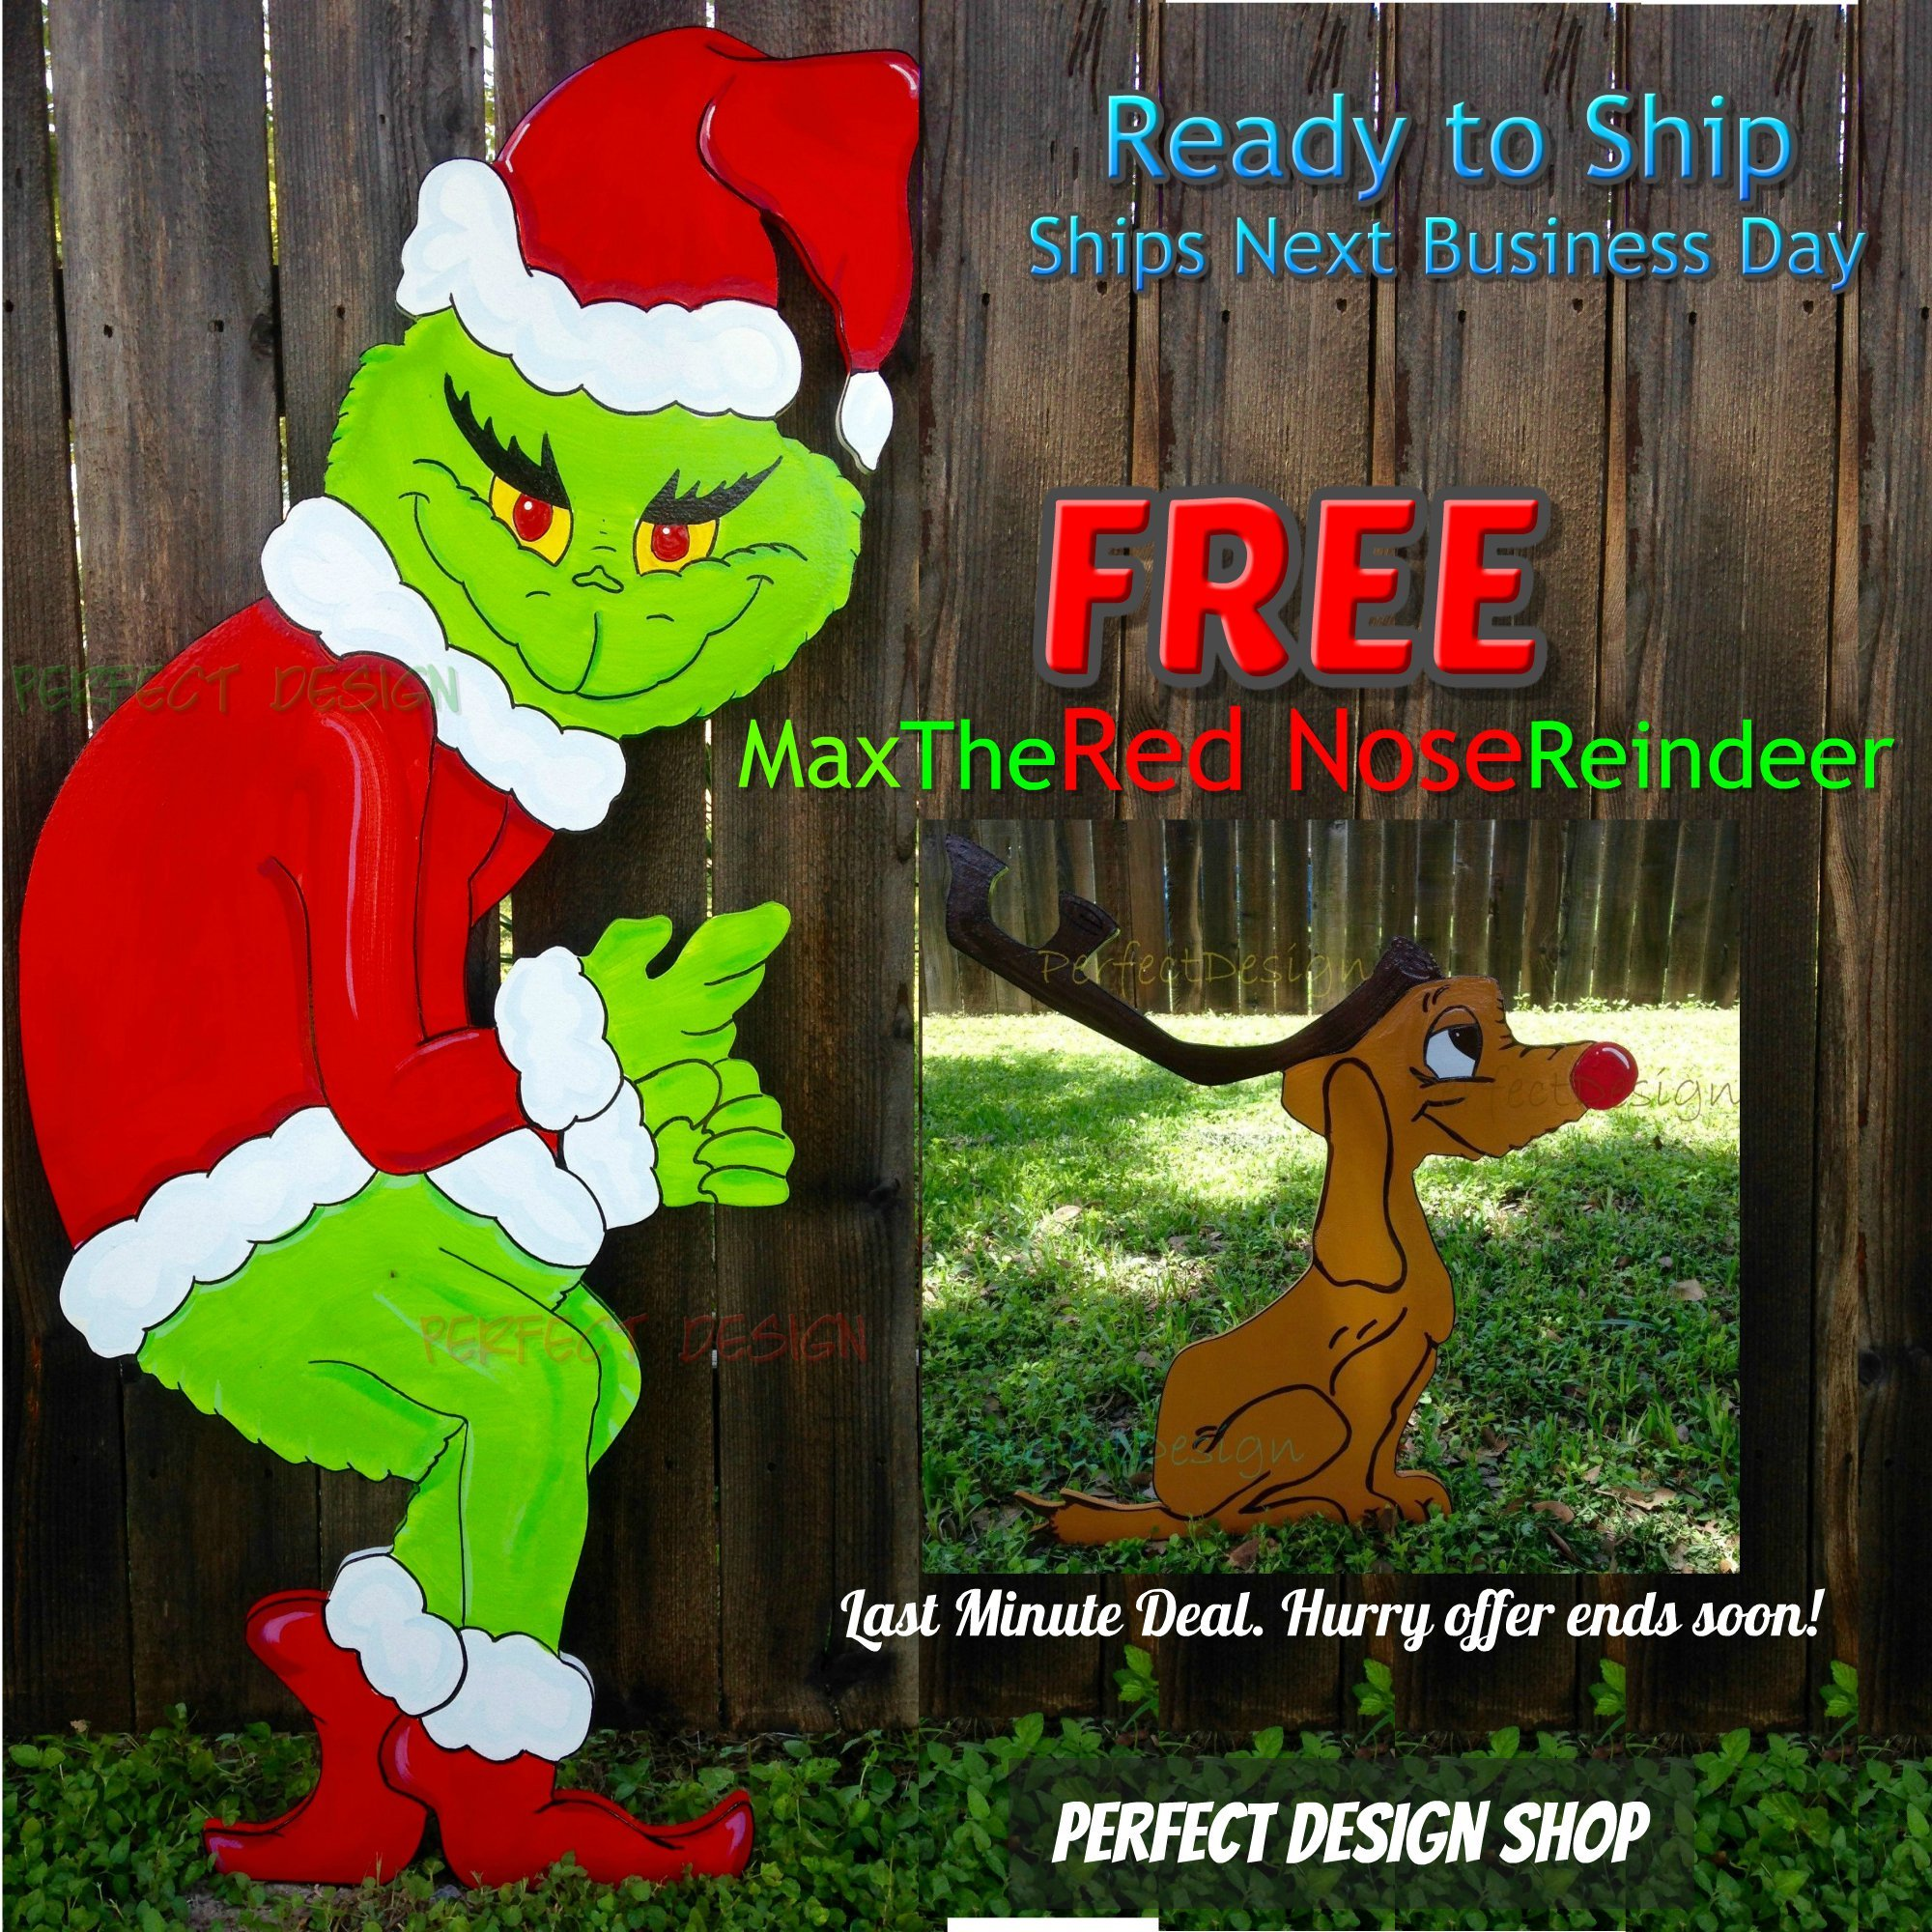 FREE MAX Grinch Stealing the Christmas Lights Handmade Wooden Yard Art Decor CUTE by Perfect Design Shop